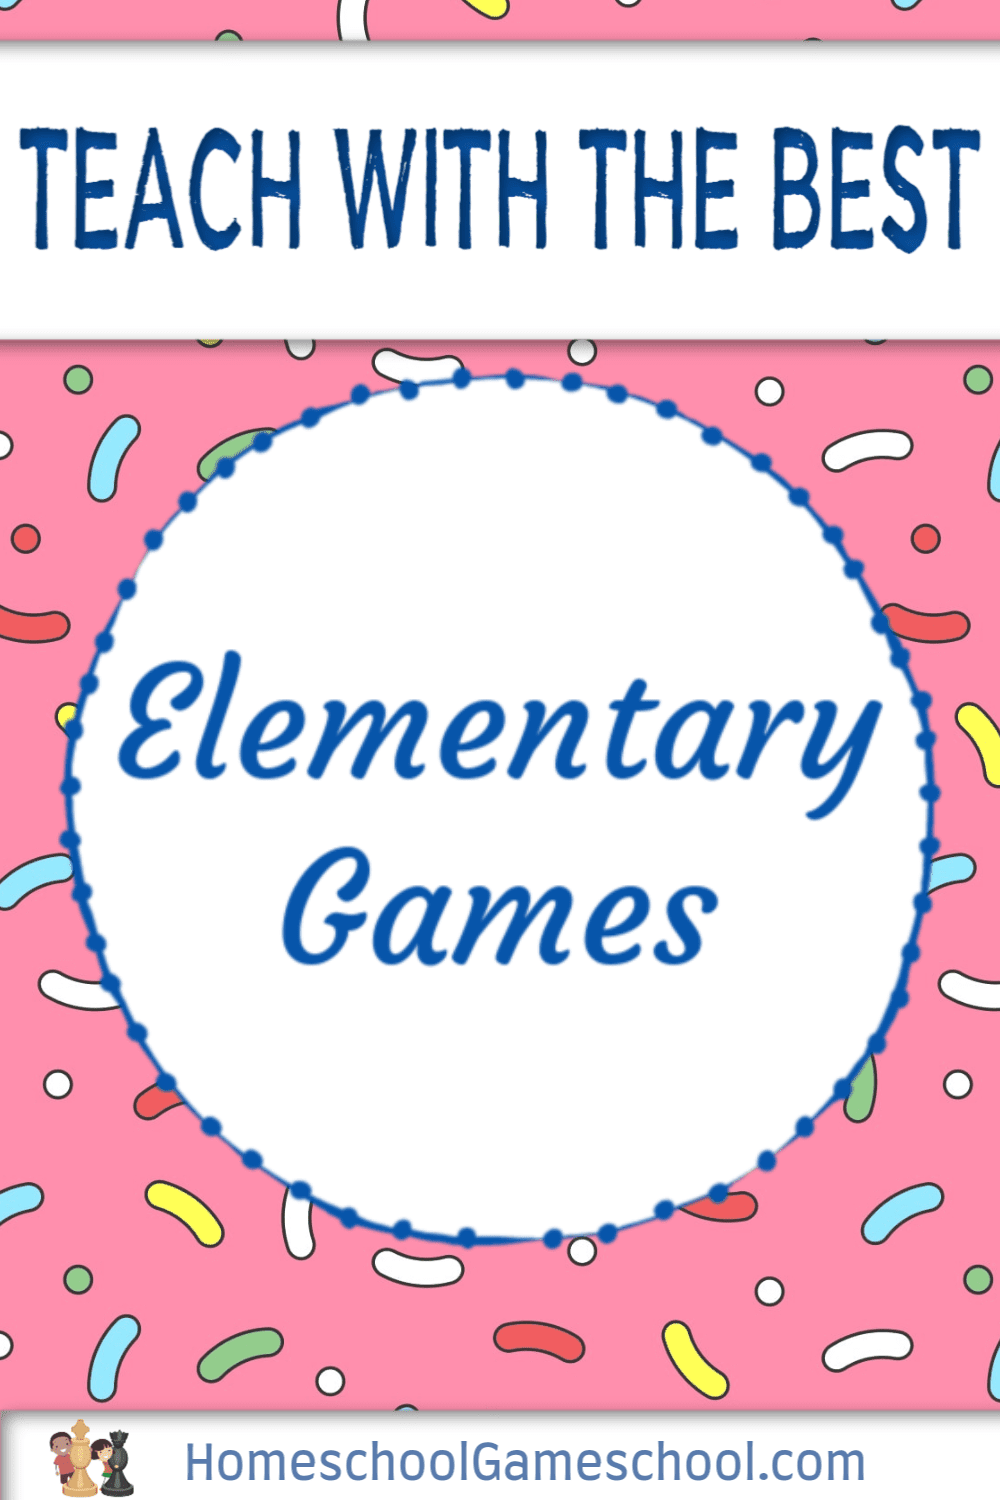 Games for elementary school - Gameschooling @ HomeschoolGameschool.com